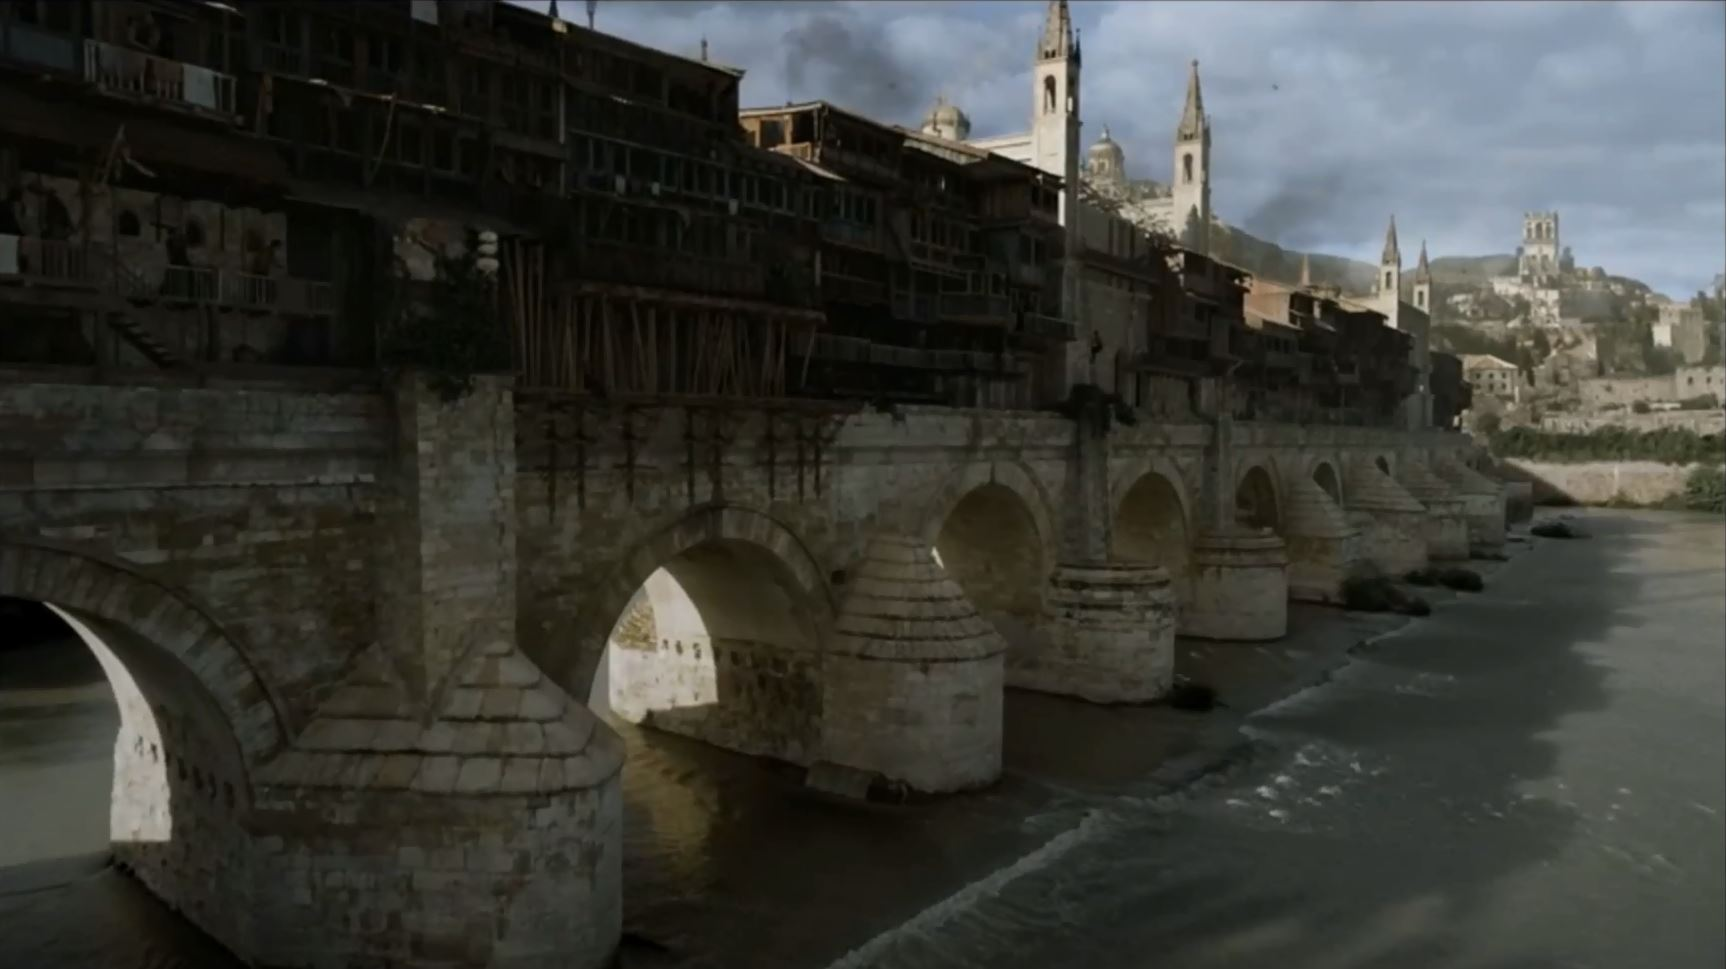 Game of Thrones Season 5 Trailer 2. Free city of Essos